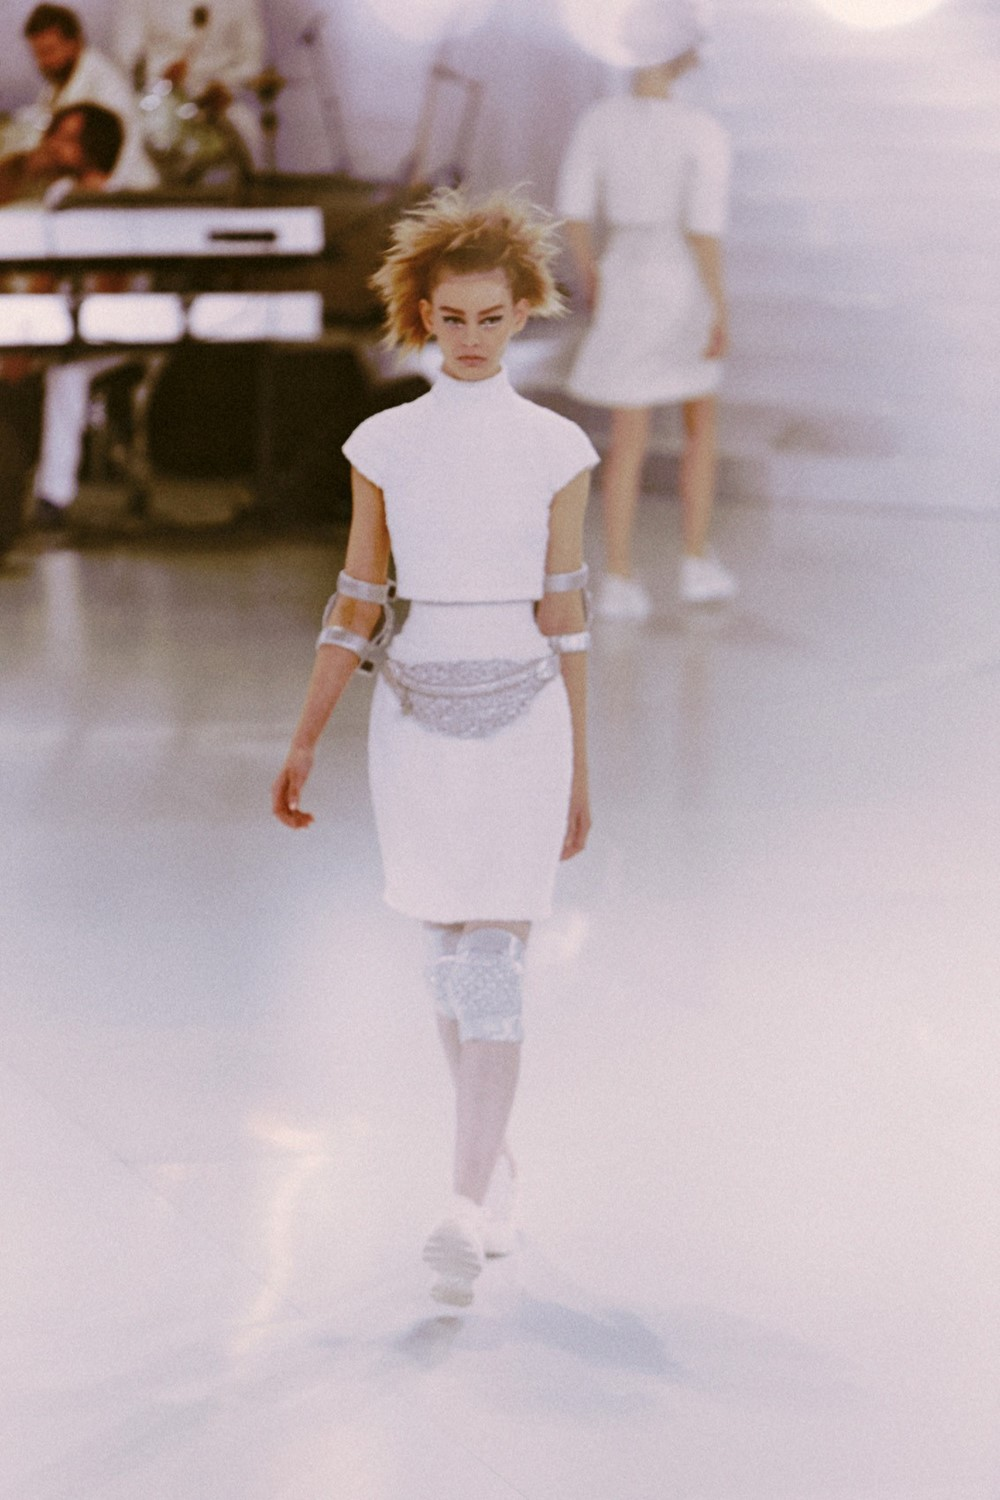 CHANELCOUTURE_SSS14 17